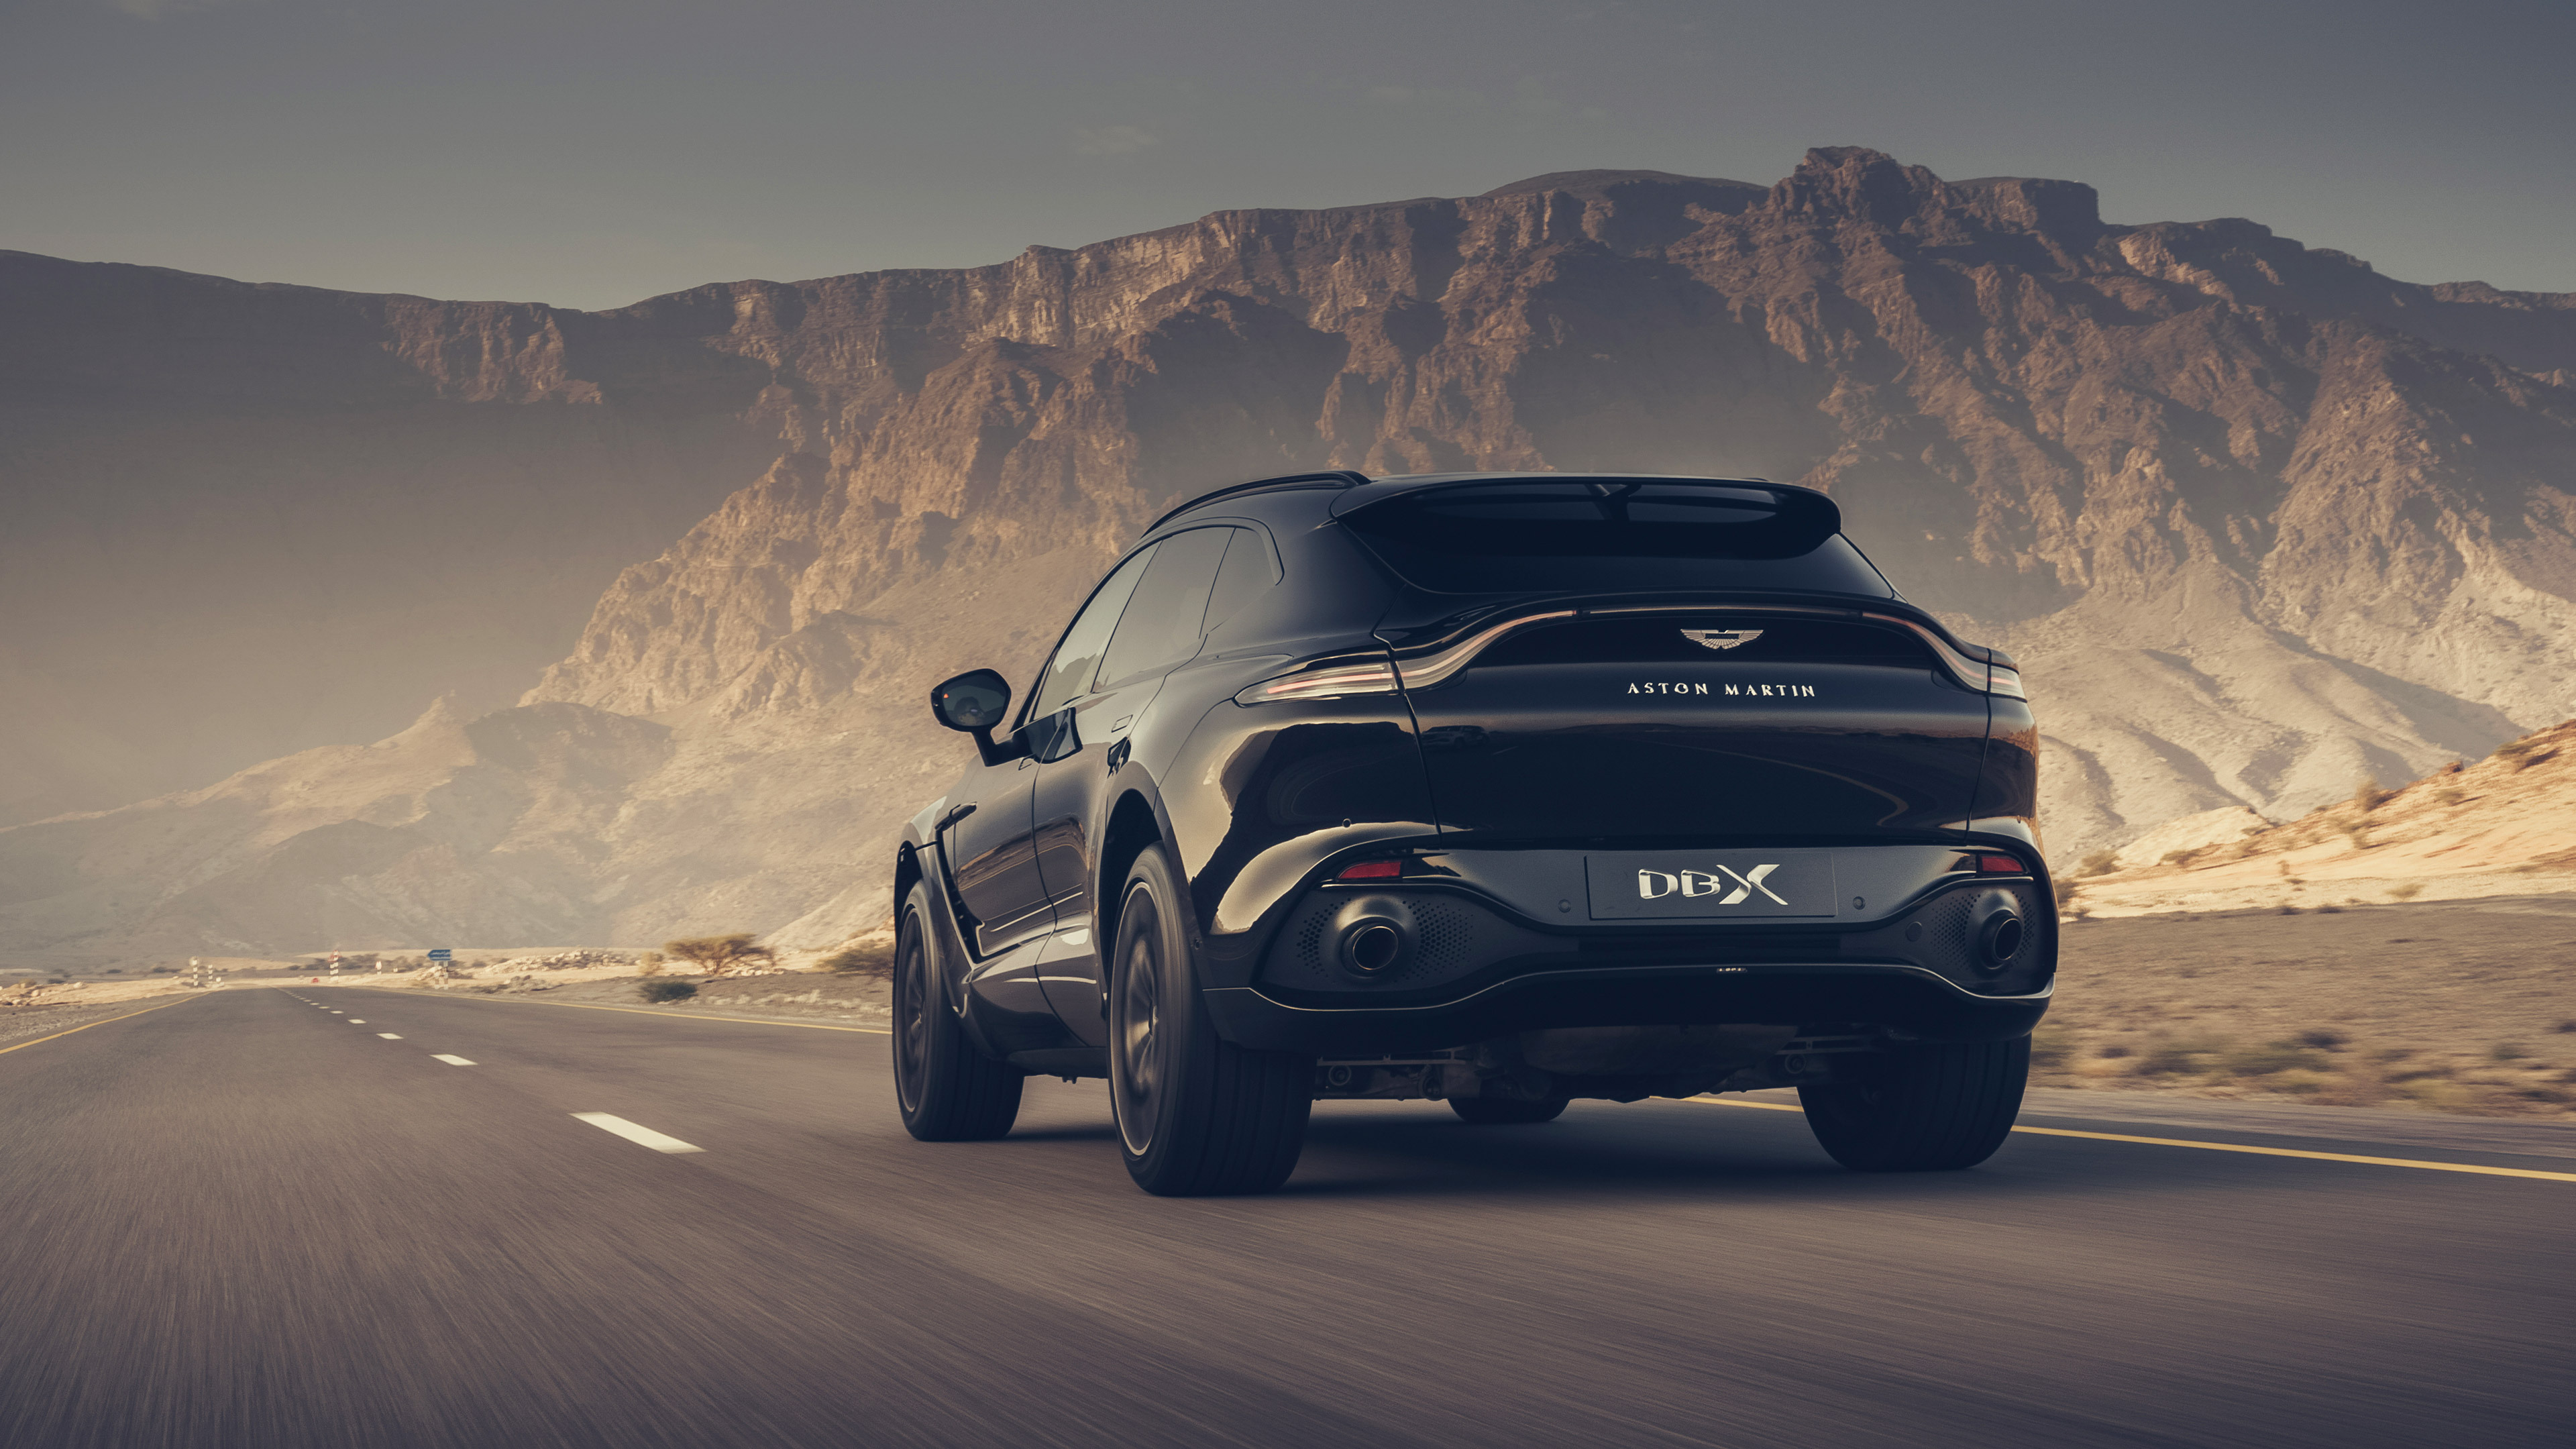 2021 Black Aston Martin Dbx 4k Ultra Hd Car Wallpaper Hd Wallpapers